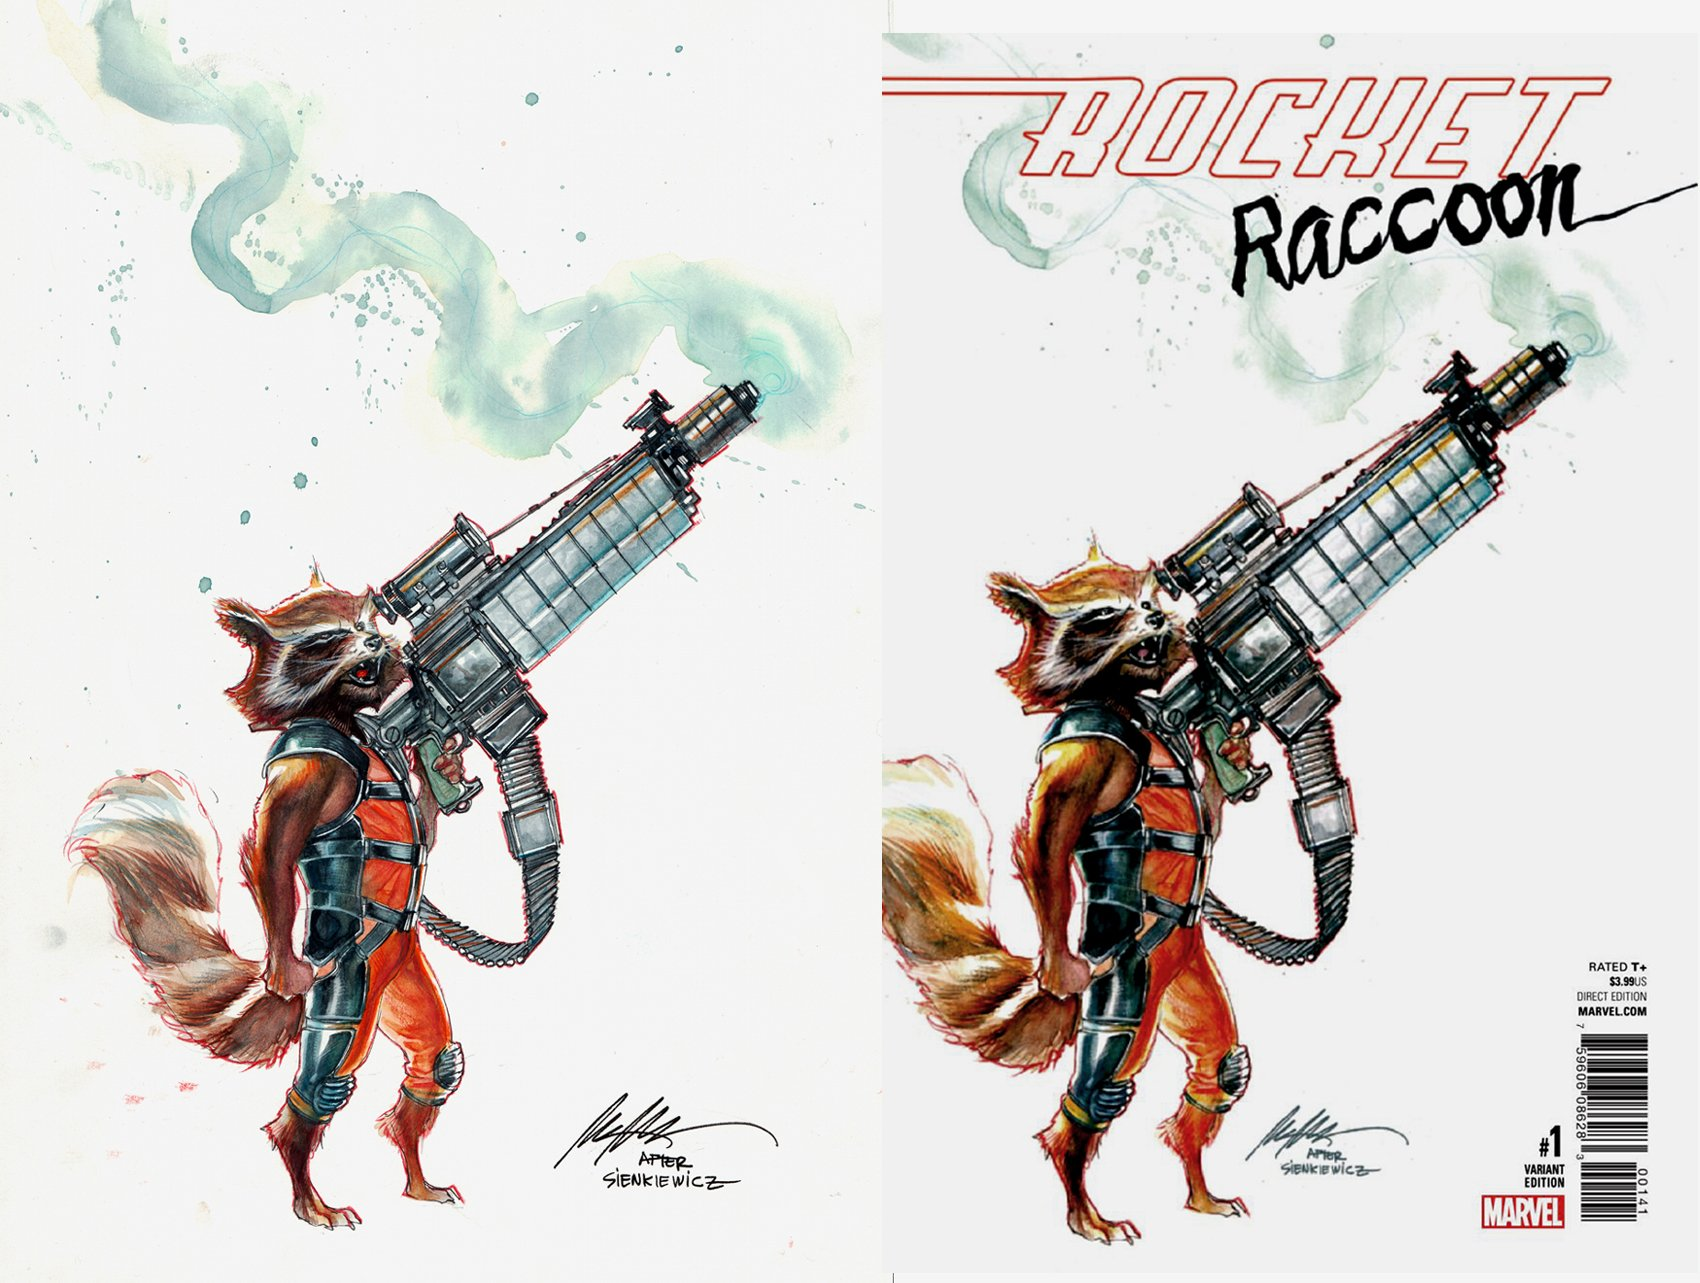 Rocket Raccoon #1 Cover (SOLD LIVE ON 'DUELING DEALERS OF COMIC ART' EPISODE #10 PODCAST ON 3-31-2021 (RE-WATCH OUR LIVE ART SELLING PODCAST HERE!)